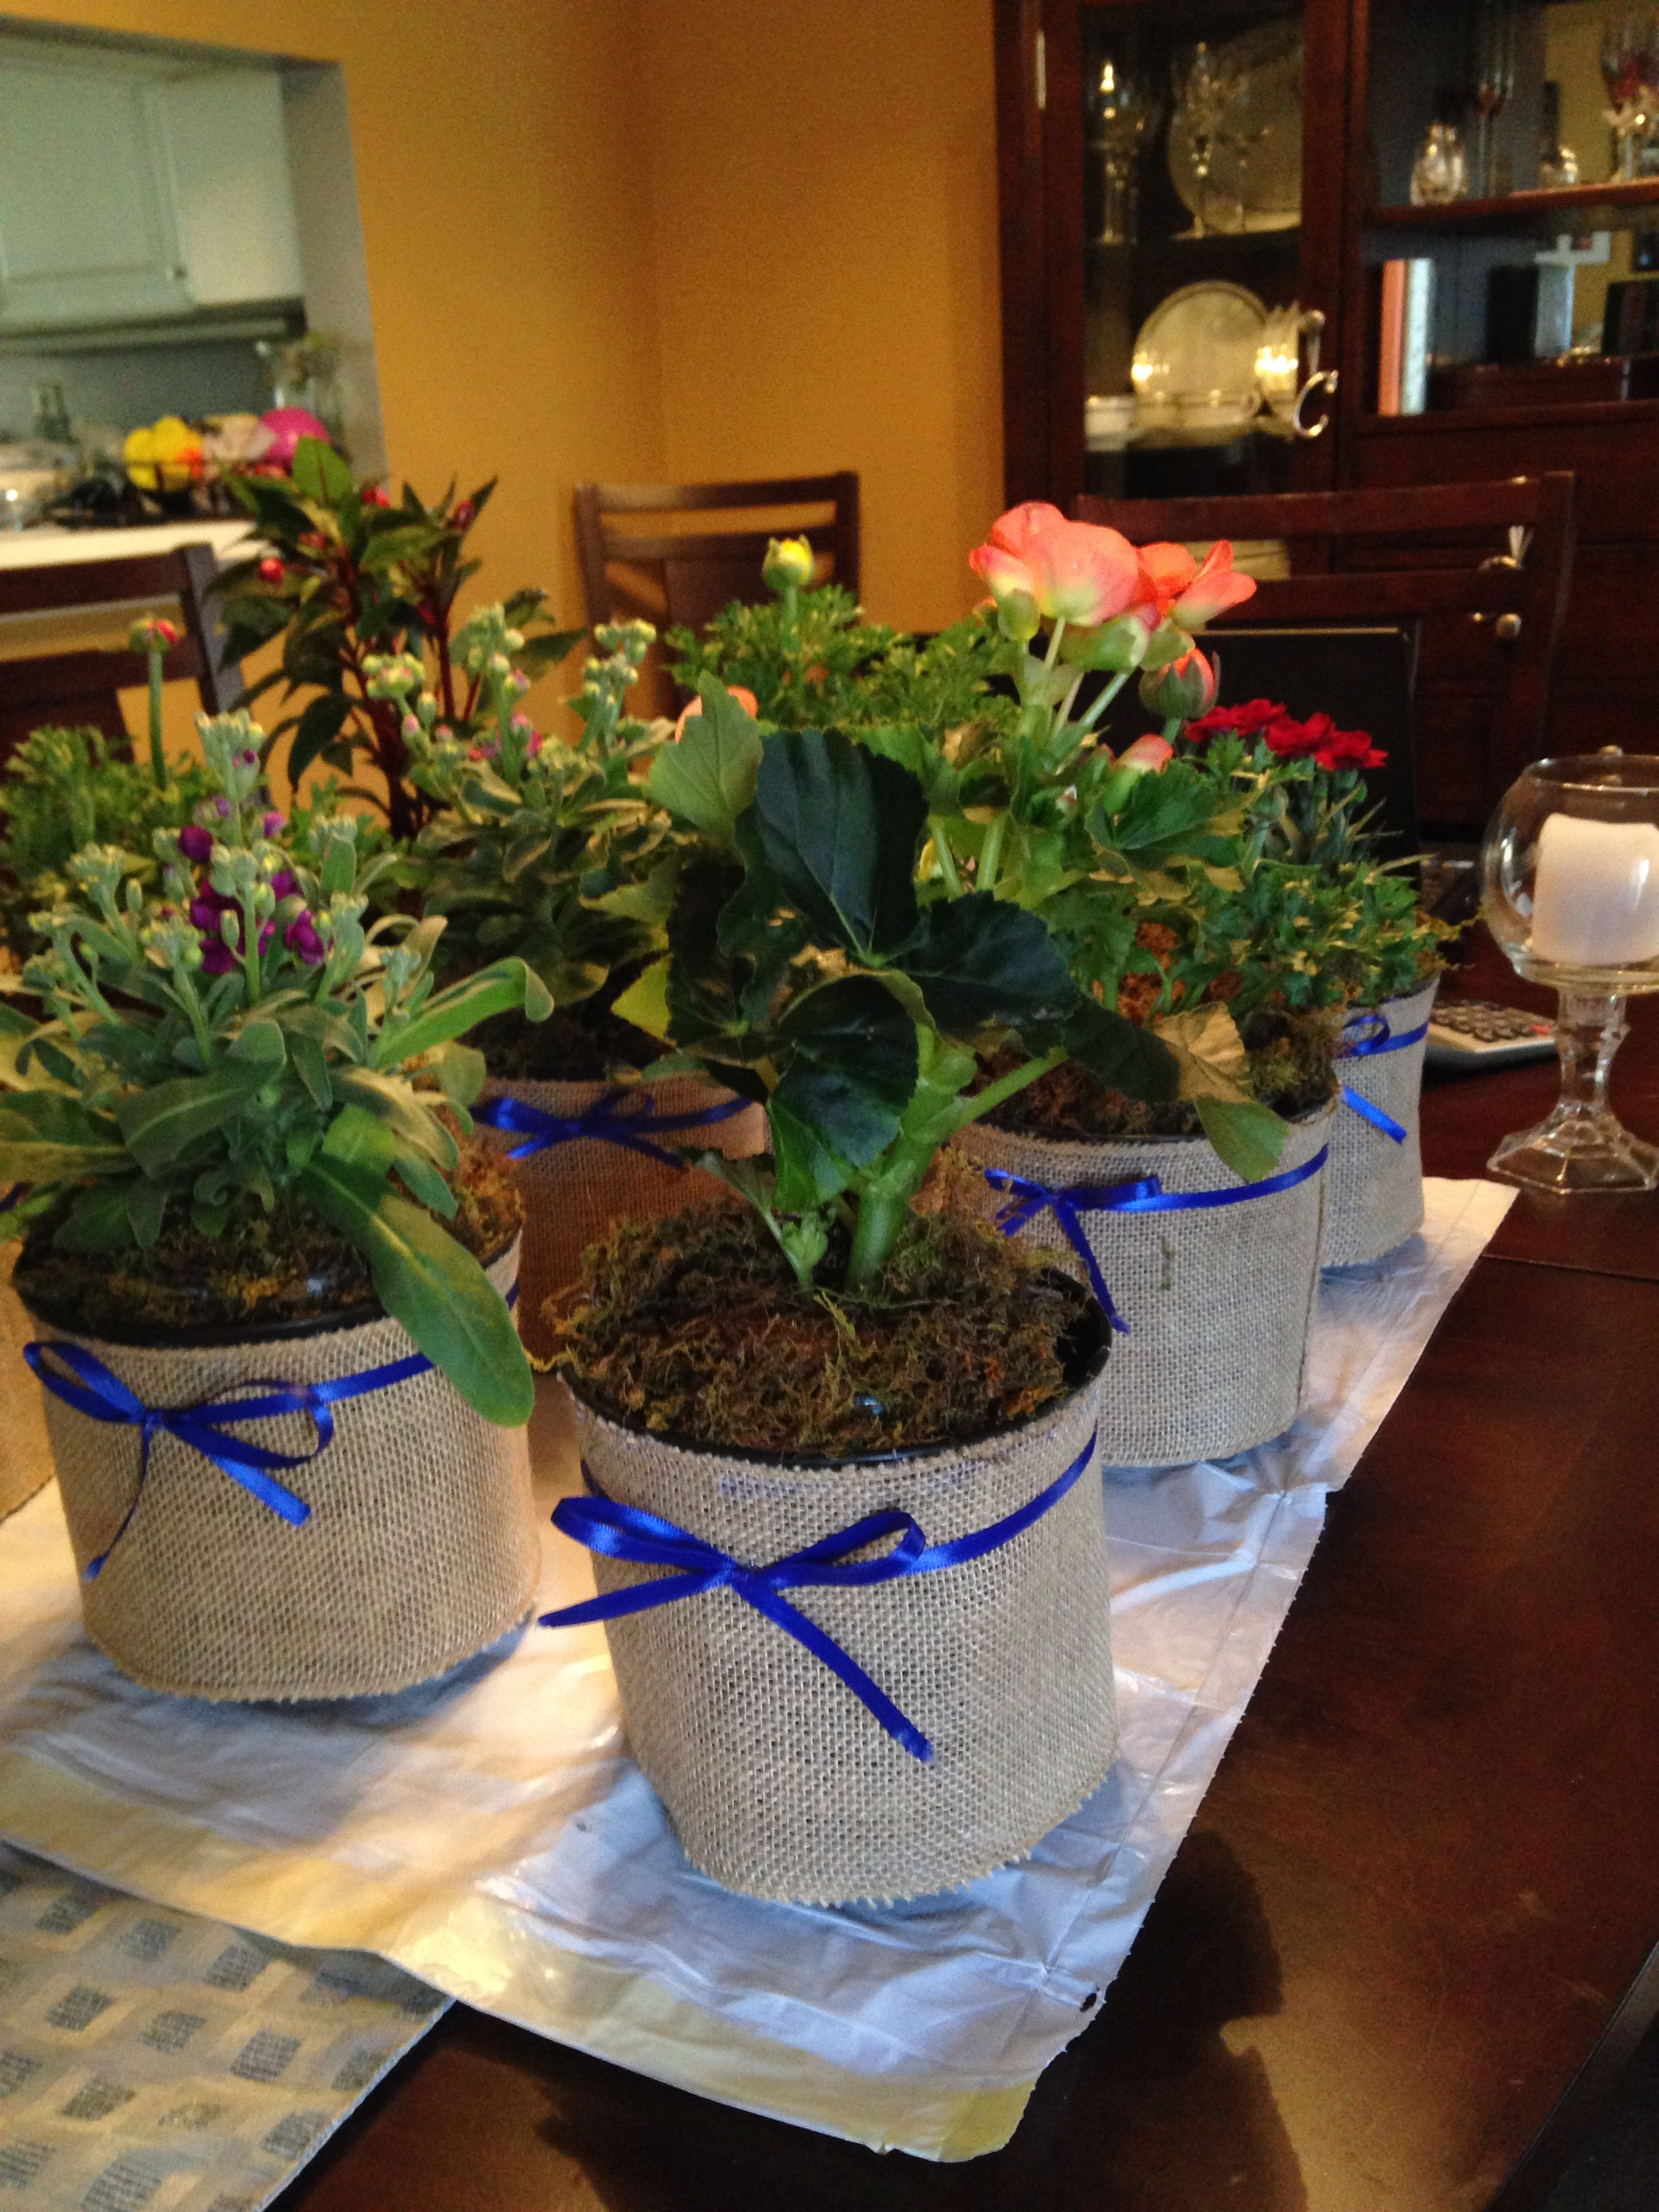 Basil Plant Home Depot Fresh Potted Plants From Home Depot A Lil Ribbon and Burlap Wrap